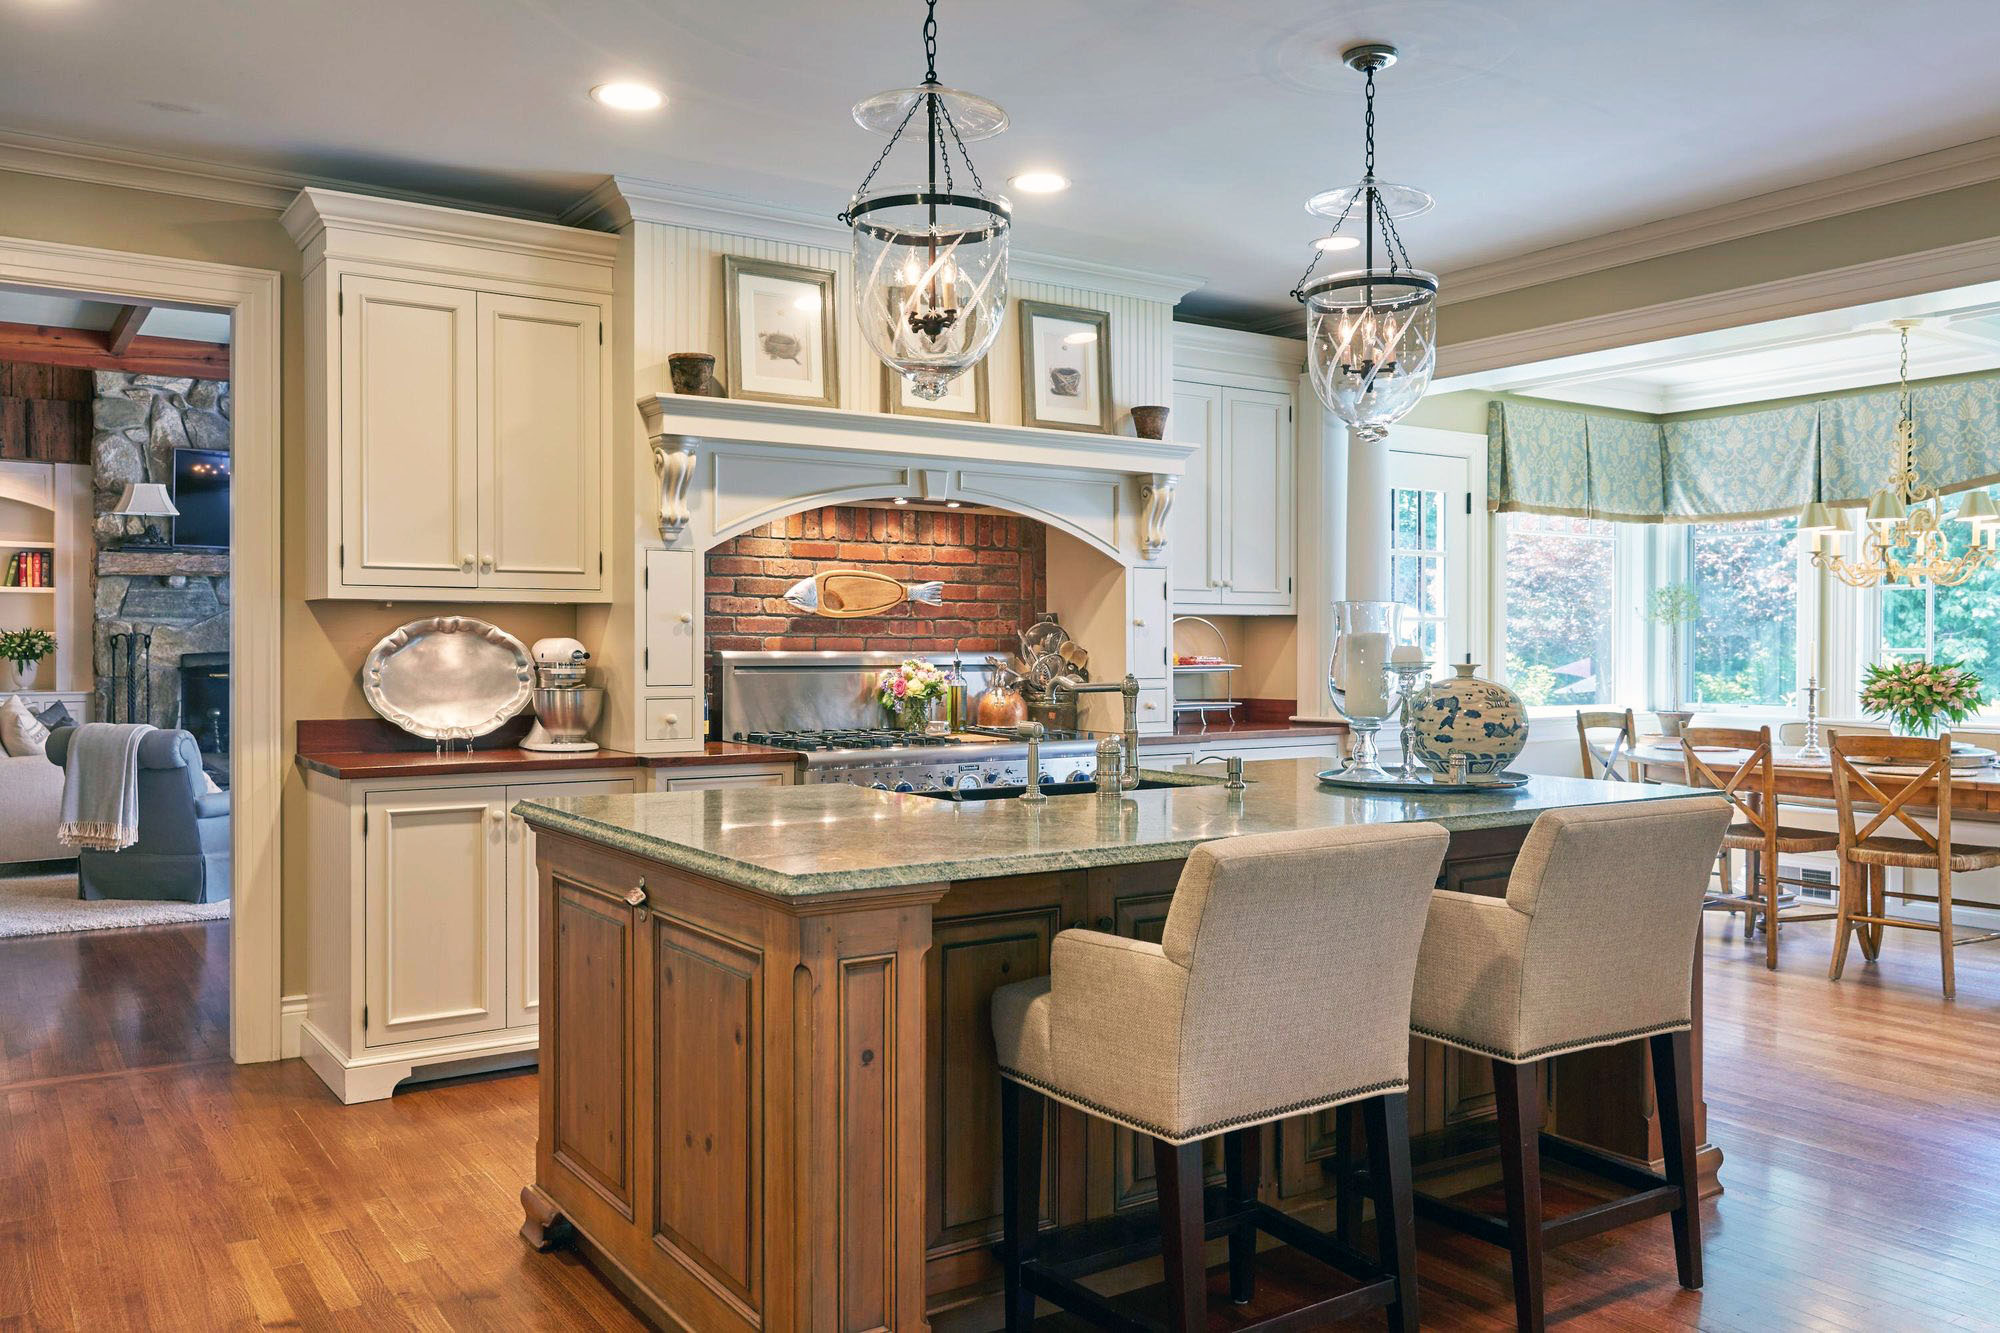 Country kitchen design using real stained wood, a red brick backsplash and granite countertops.